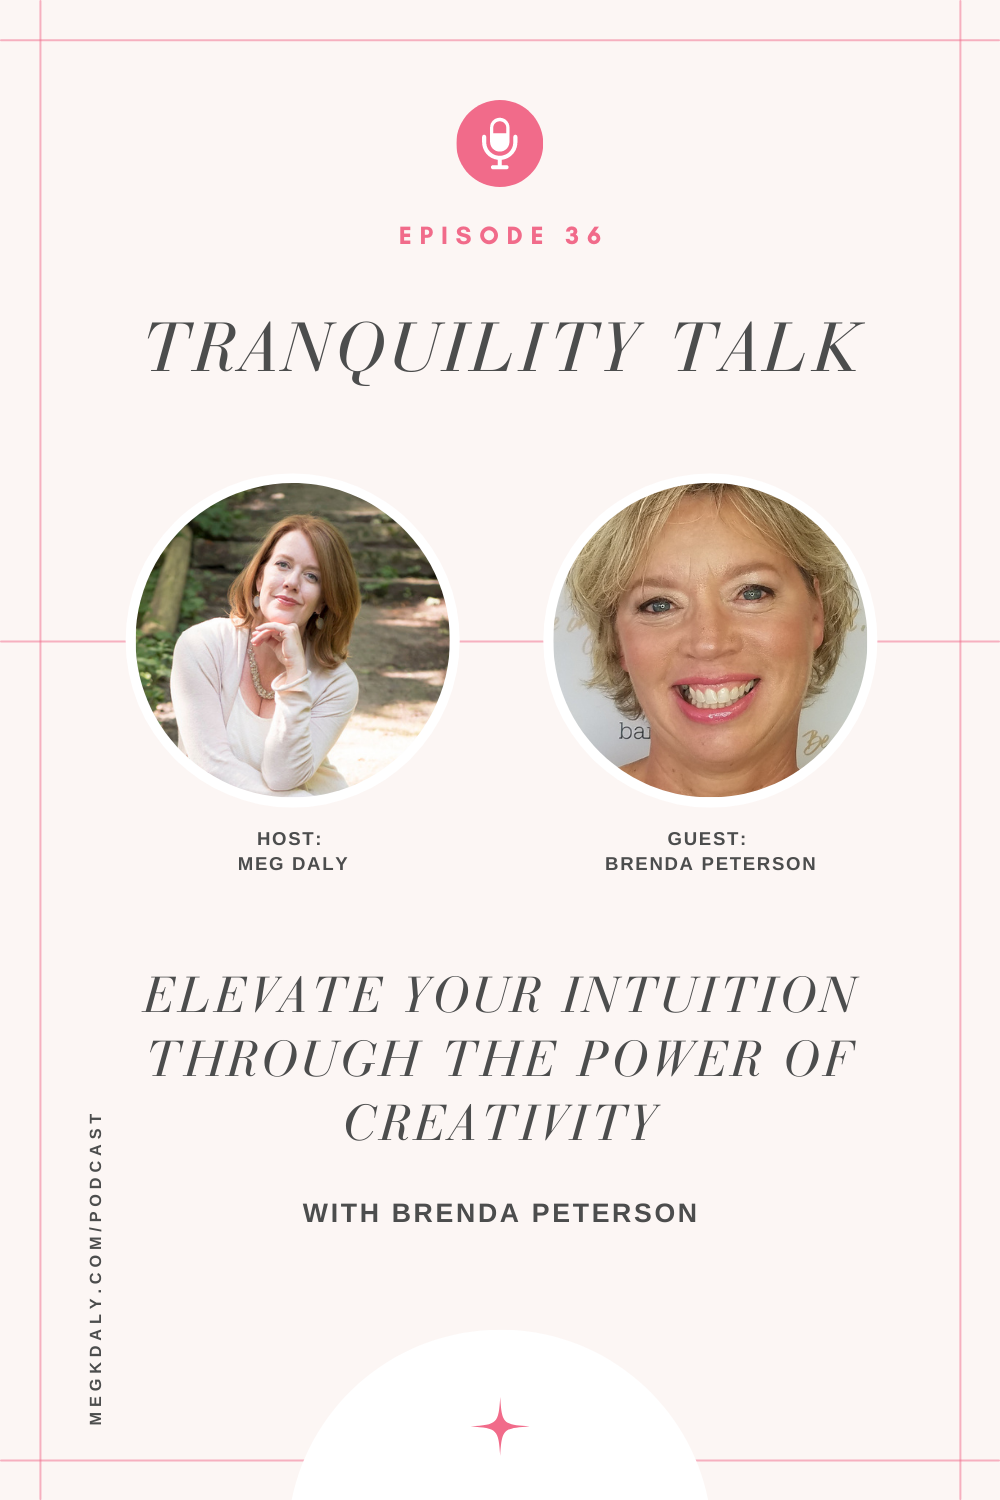 Tranquility Talk: Elevate your intuition through the power of creativity with Brenda Peterson